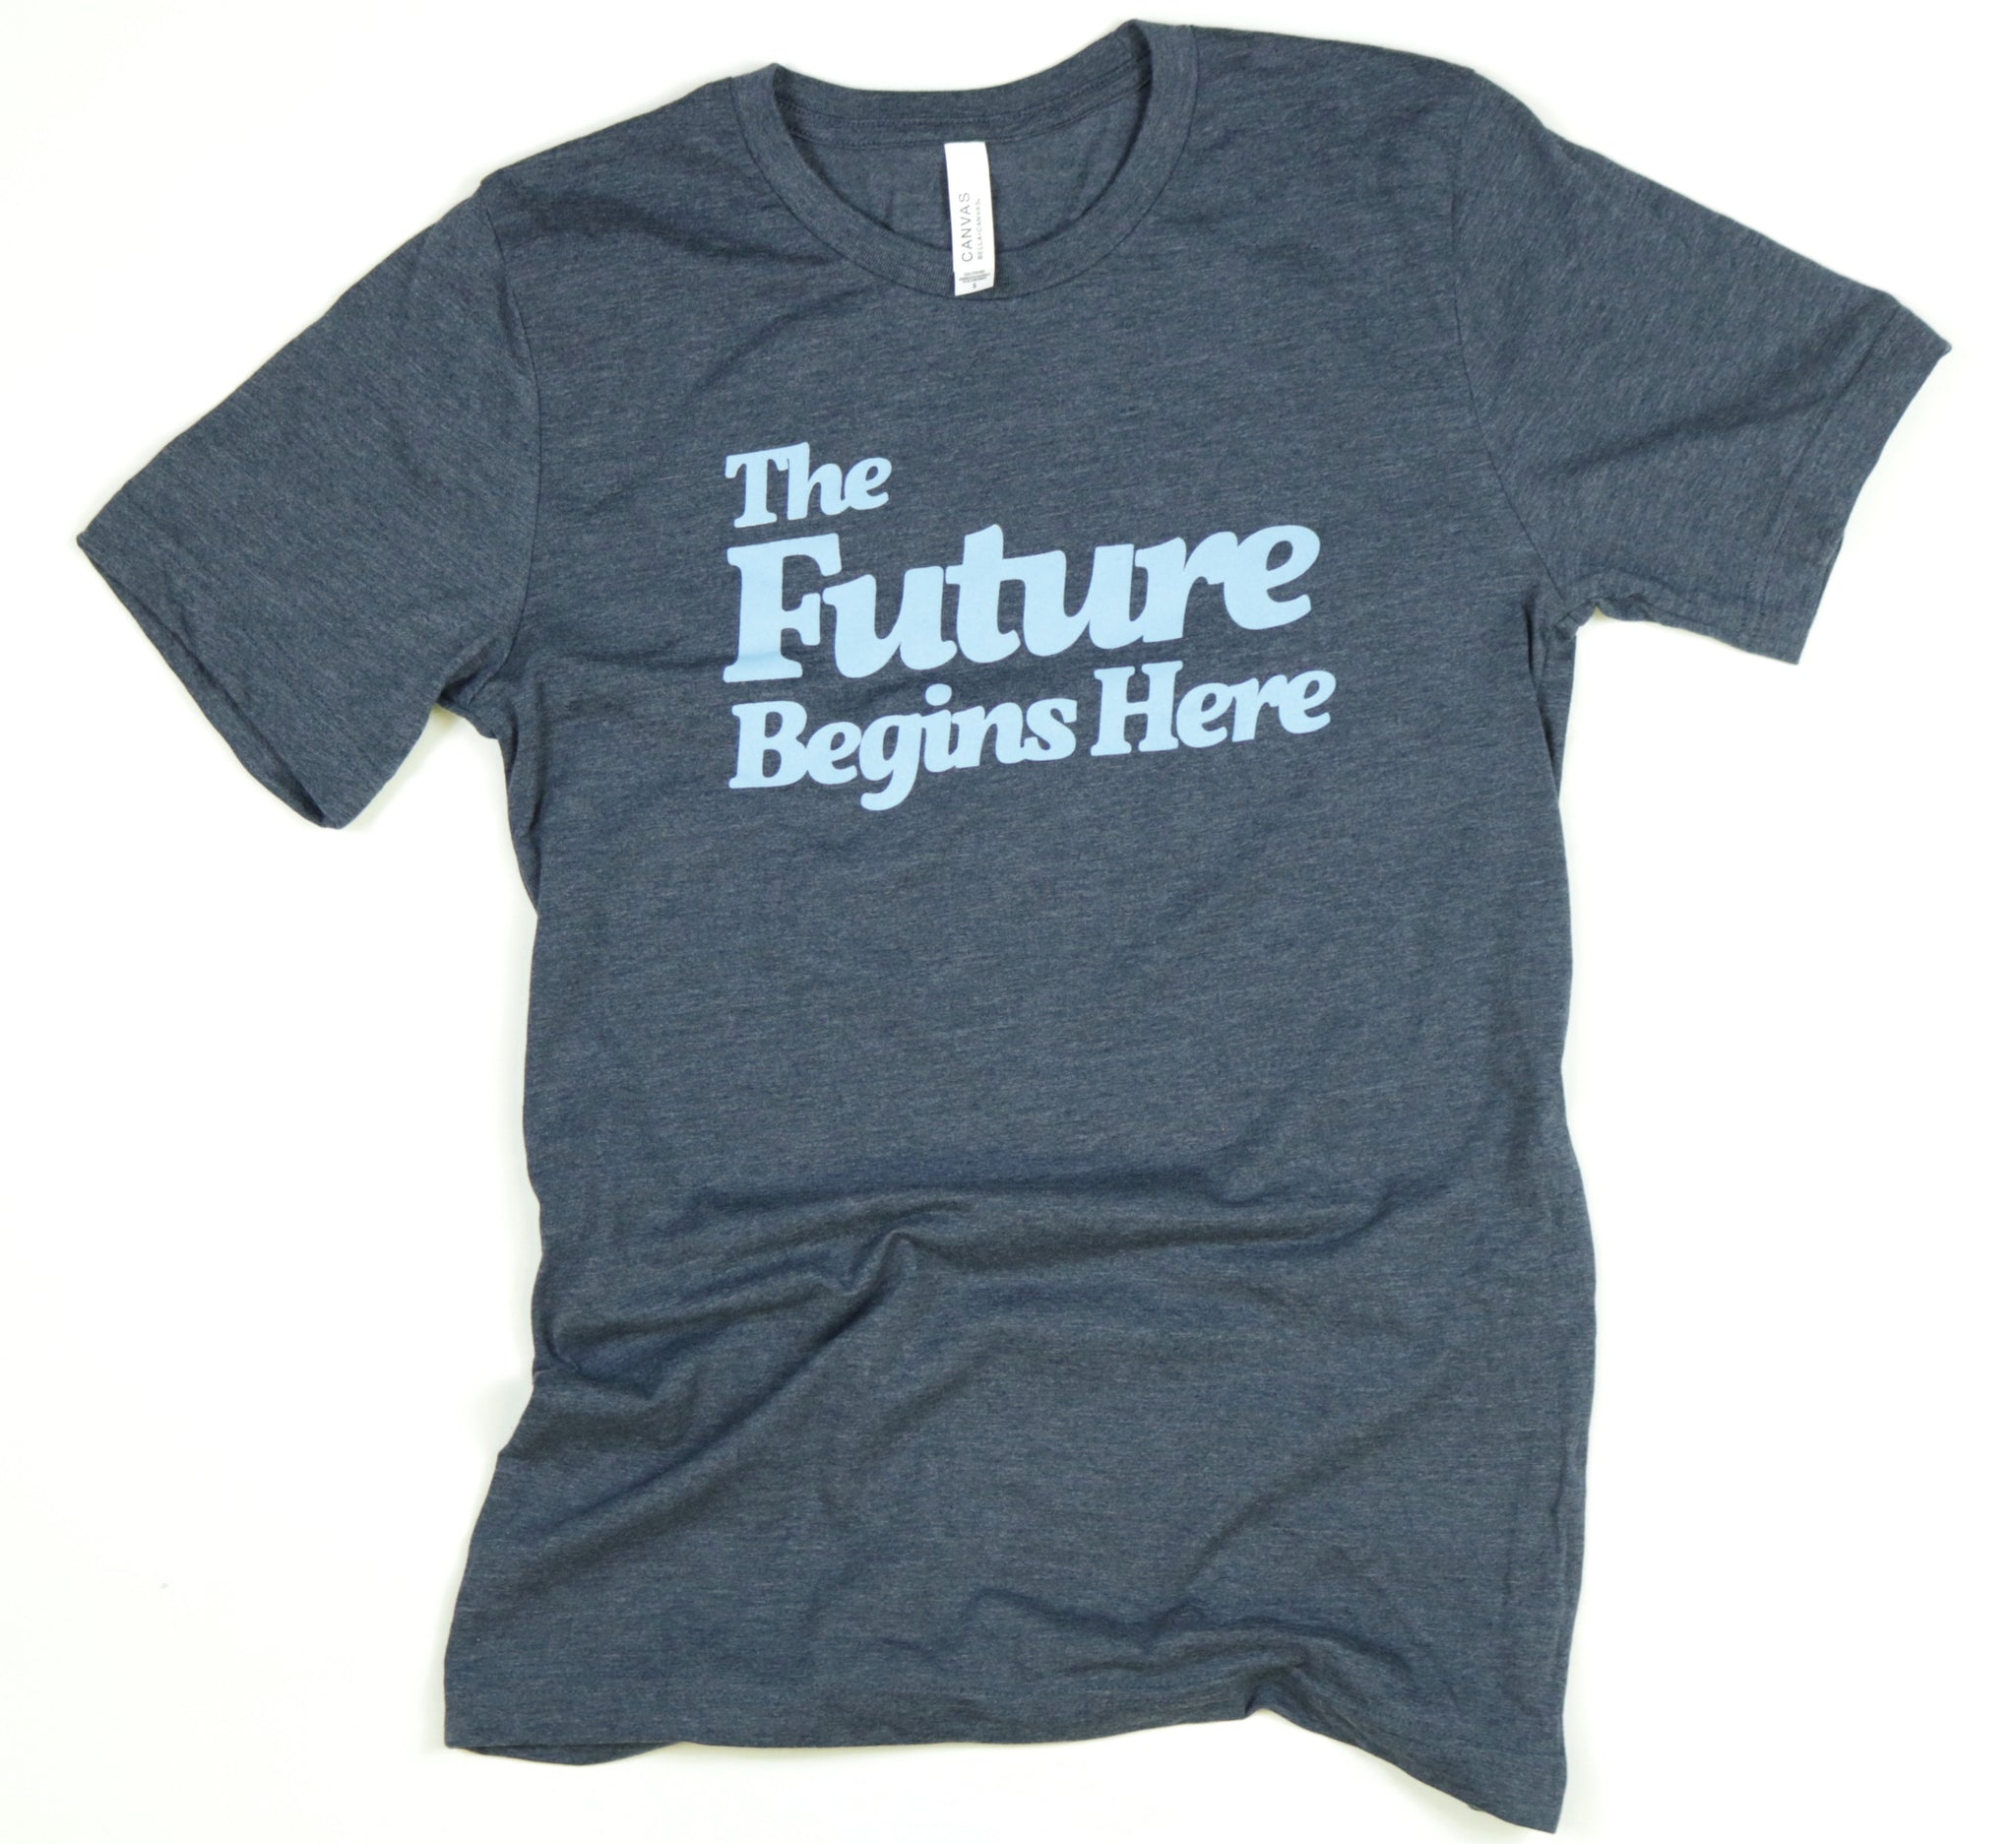 The Future Begins Here Adult Unisex Tee